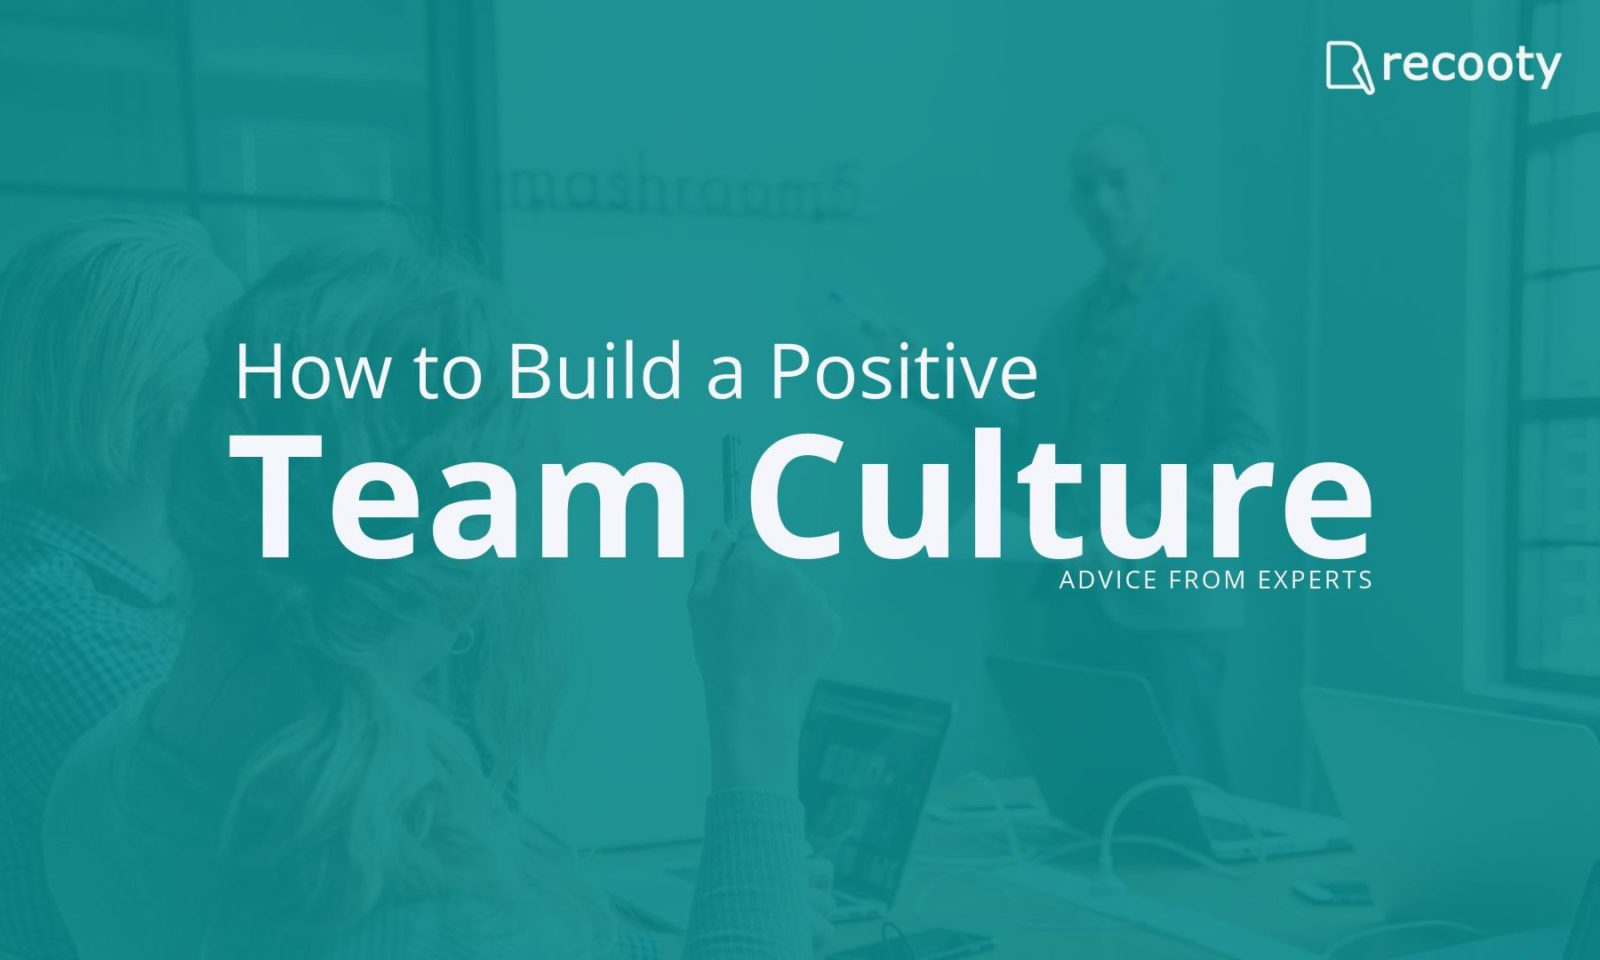 How to build a positive team culture